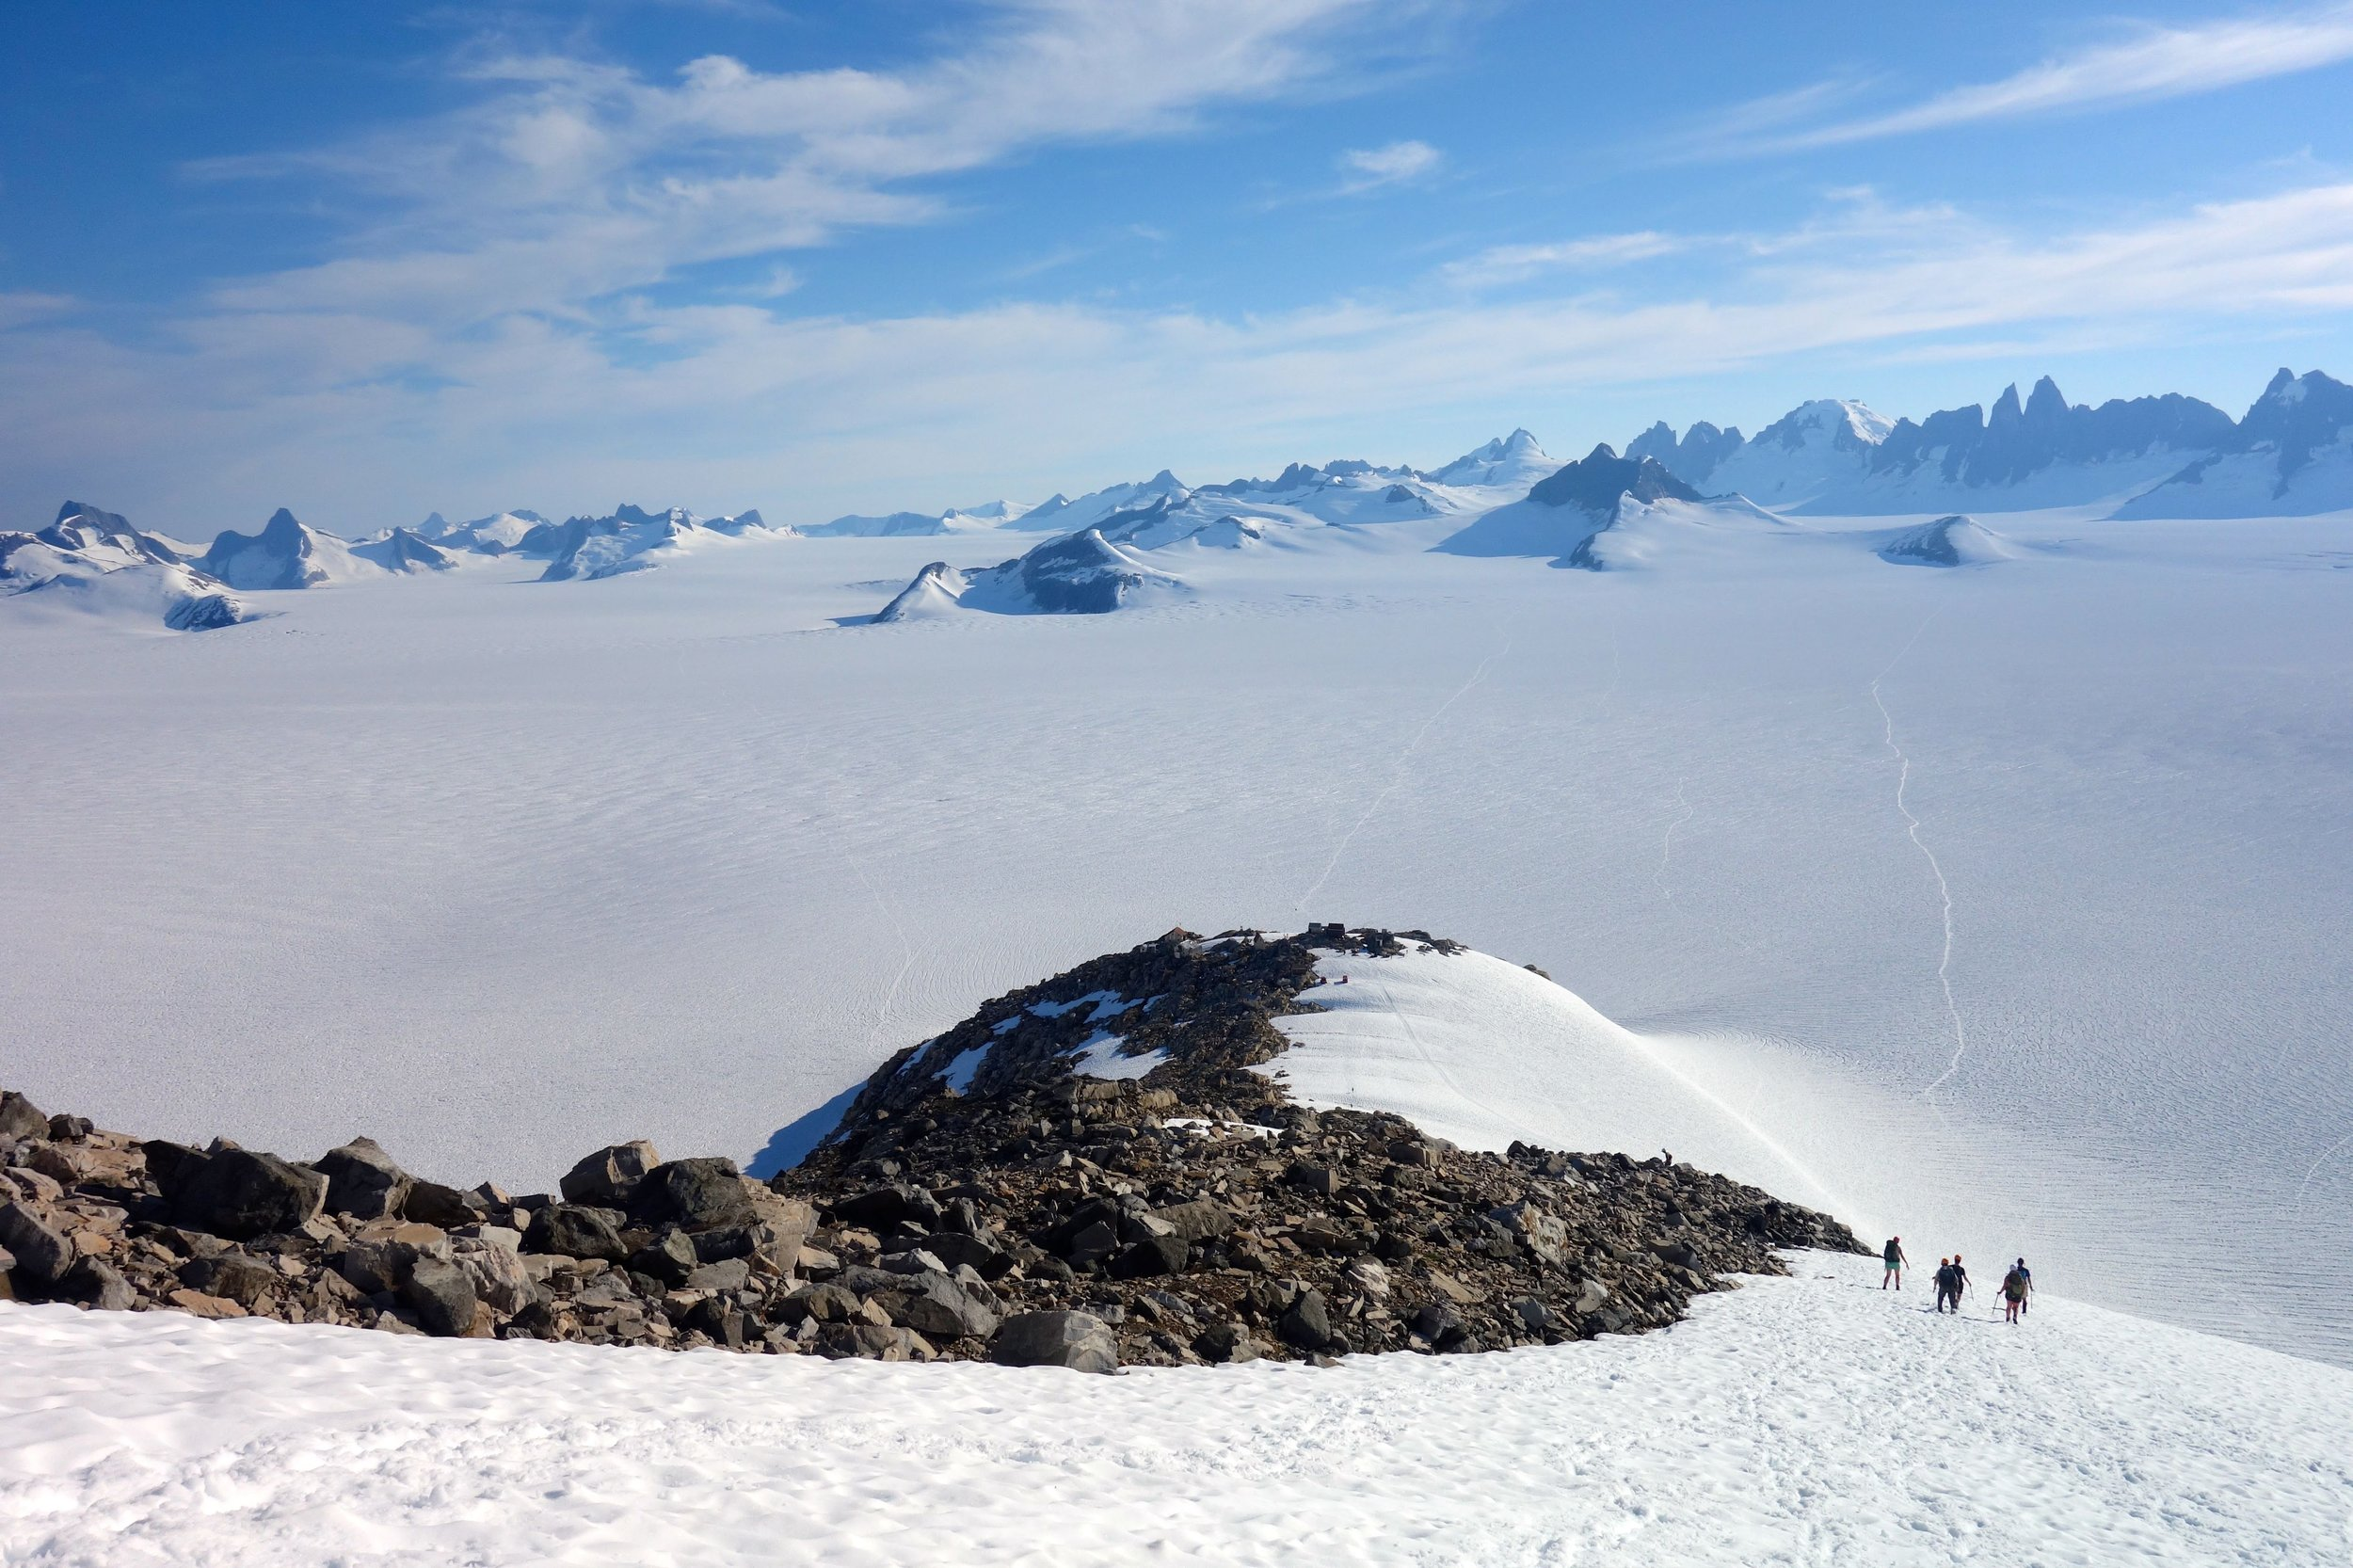 The hike down to camp for dinner. At the top of the rocky hilltop in the fore ground you can pick out the buildings of our largest camp. Beyond camp, Taku Glacier flows from right to left in front of the distant Taku Towers. Photo credit: Kenzie McAdams.